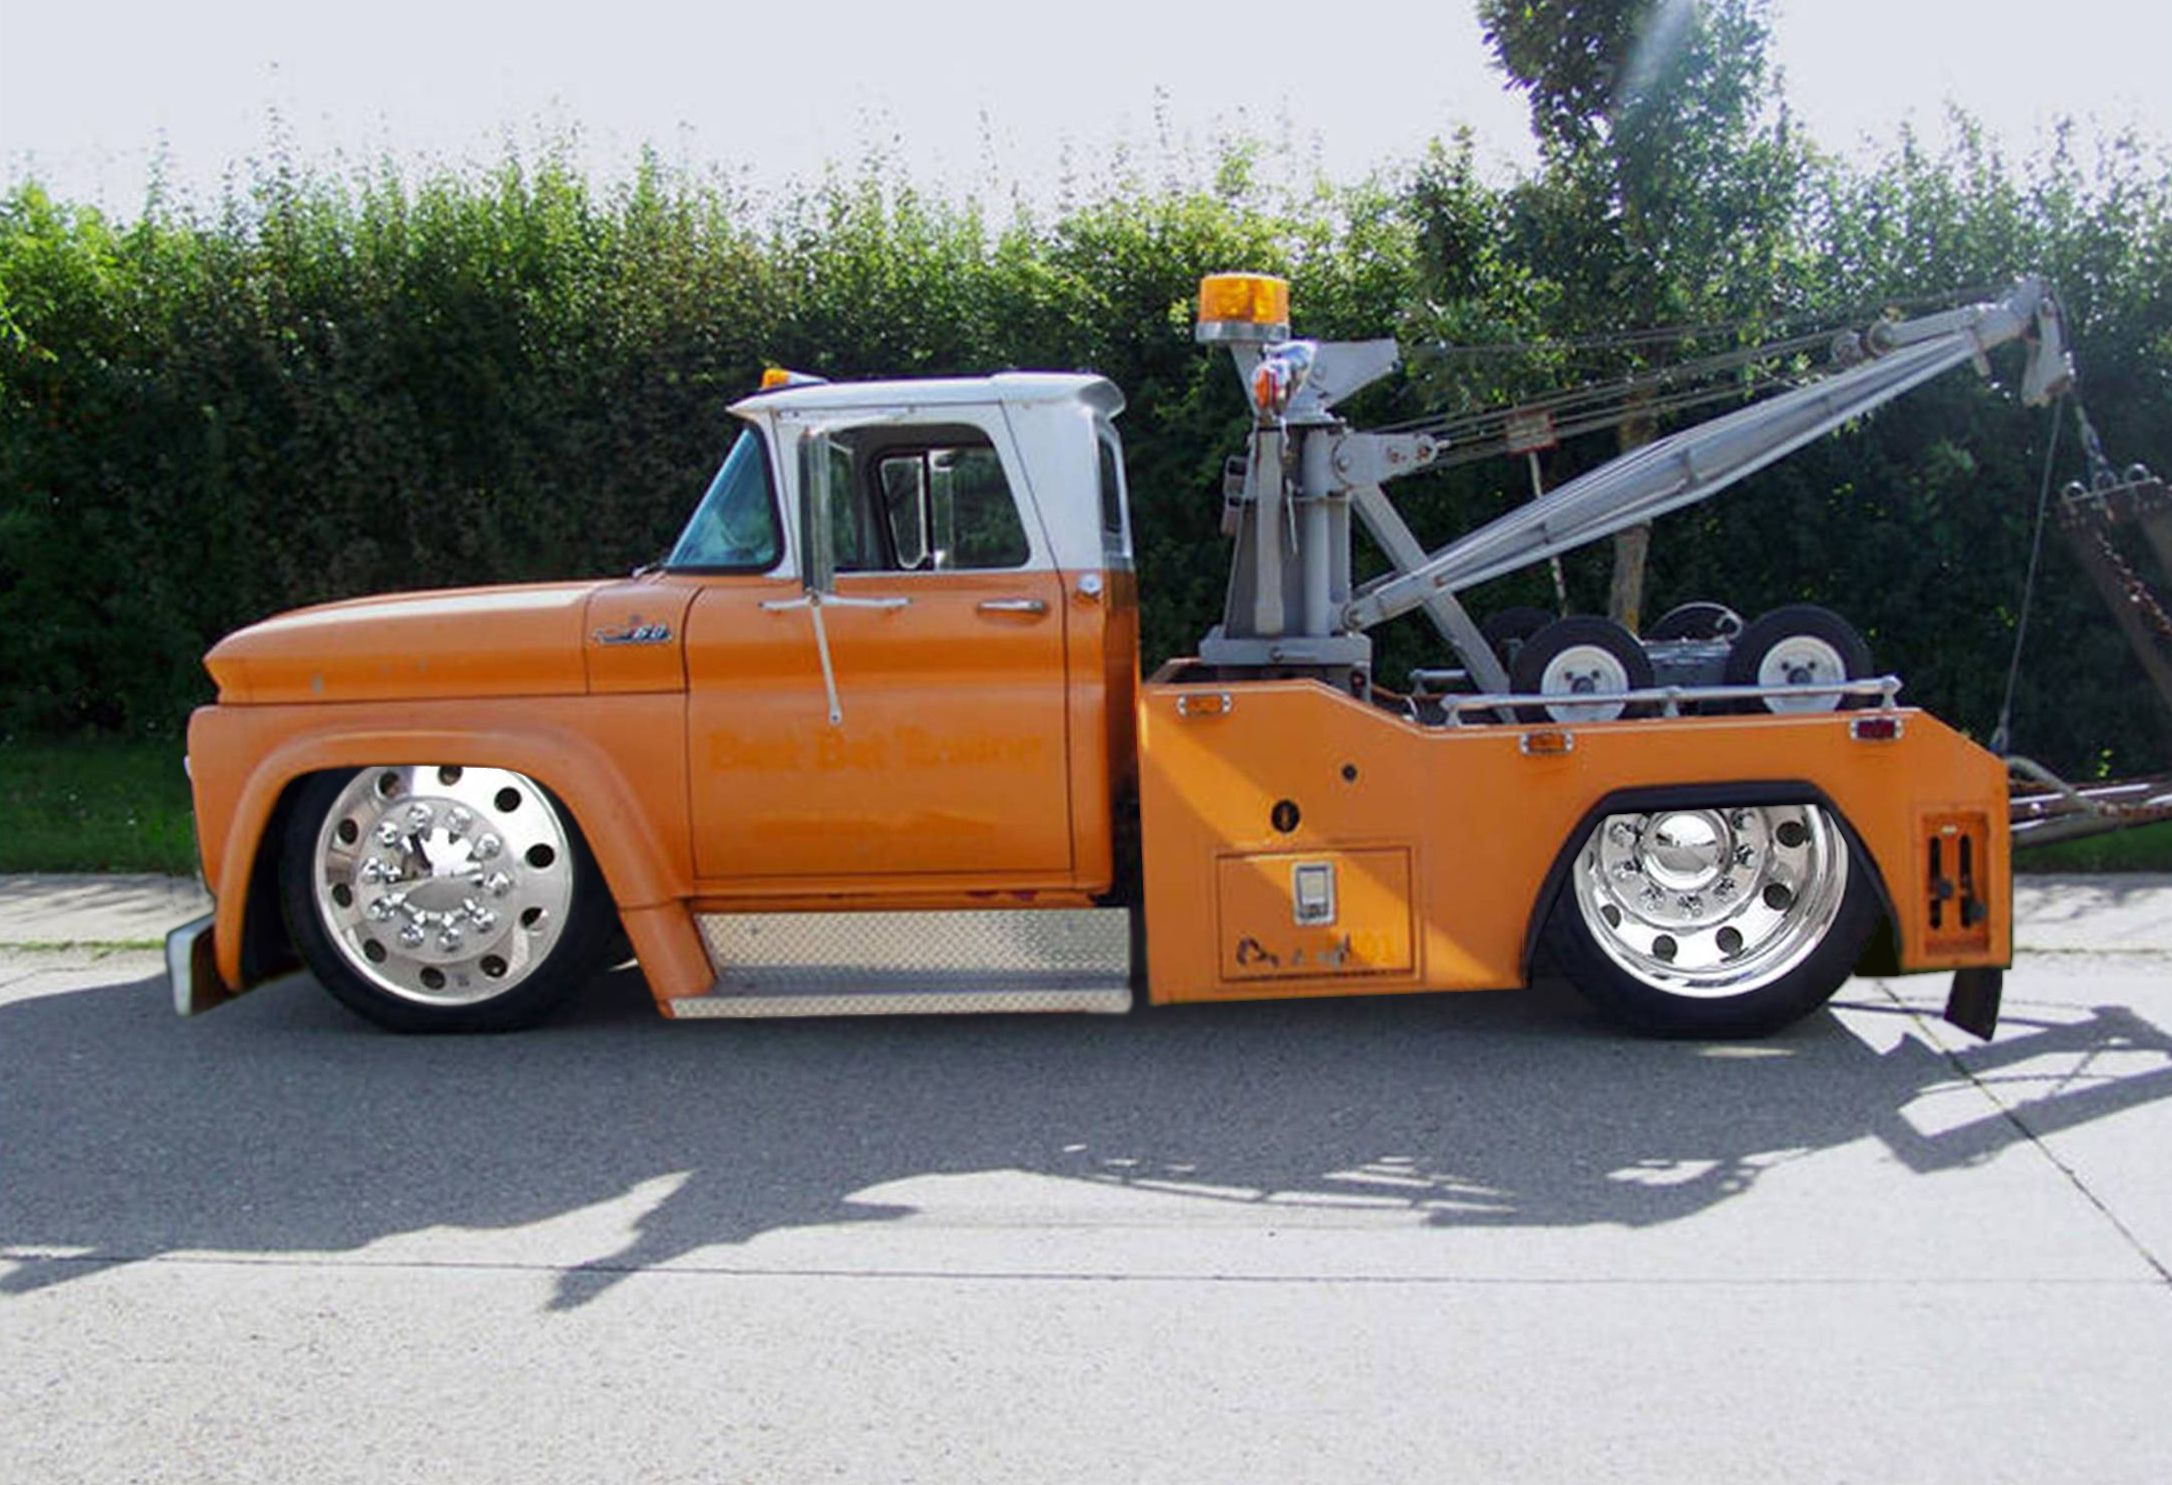 The 25+ best Tow truck ideas on Pinterest | Tow truck near me, Rat rods and Rat rods images